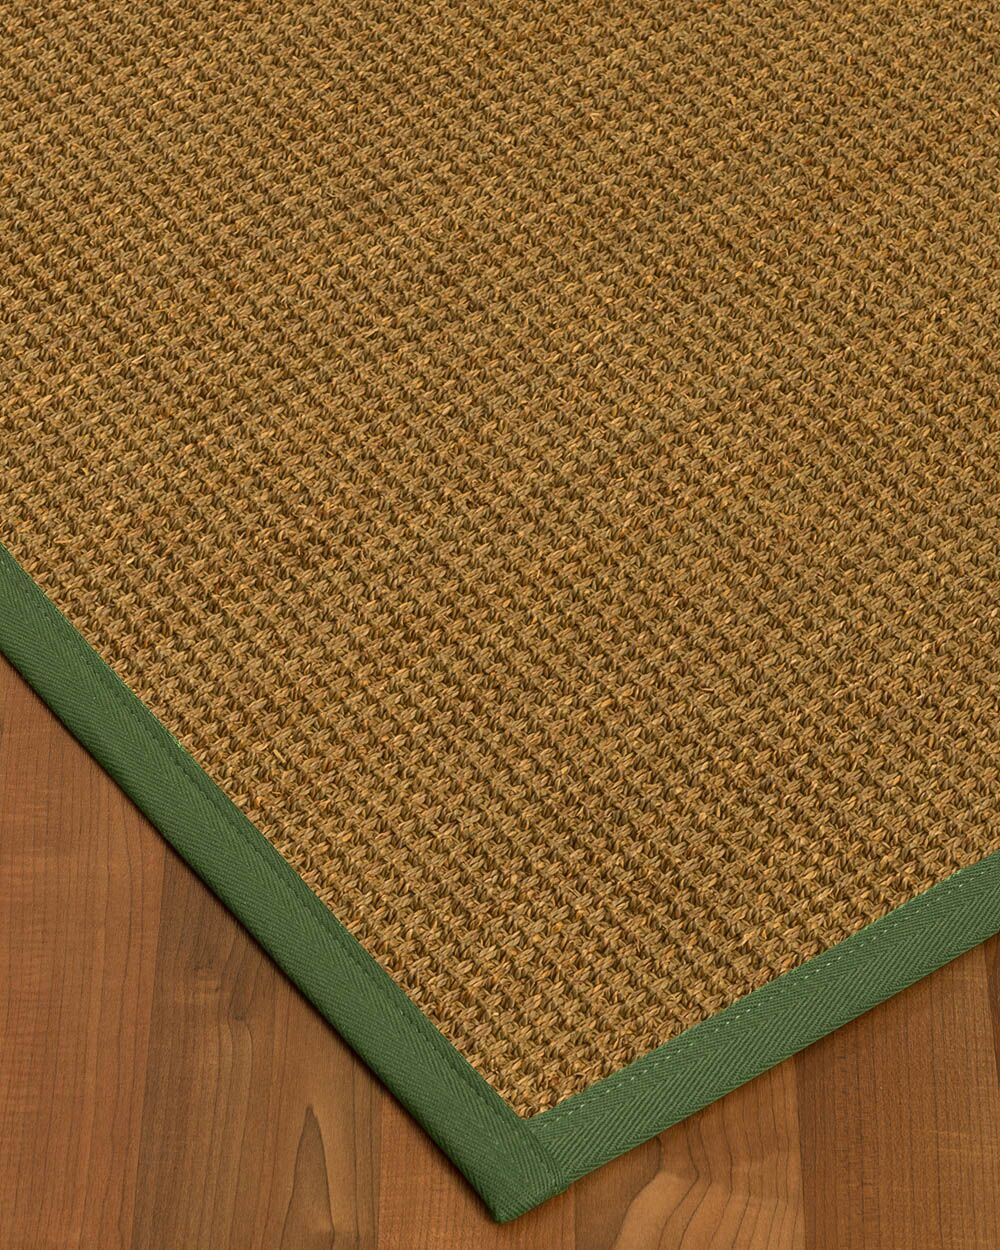 Chavez Border Hand-Woven Beige/Green Area Rug Rug Size: Rectangle 4' x 6', Rug Pad Included: Yes